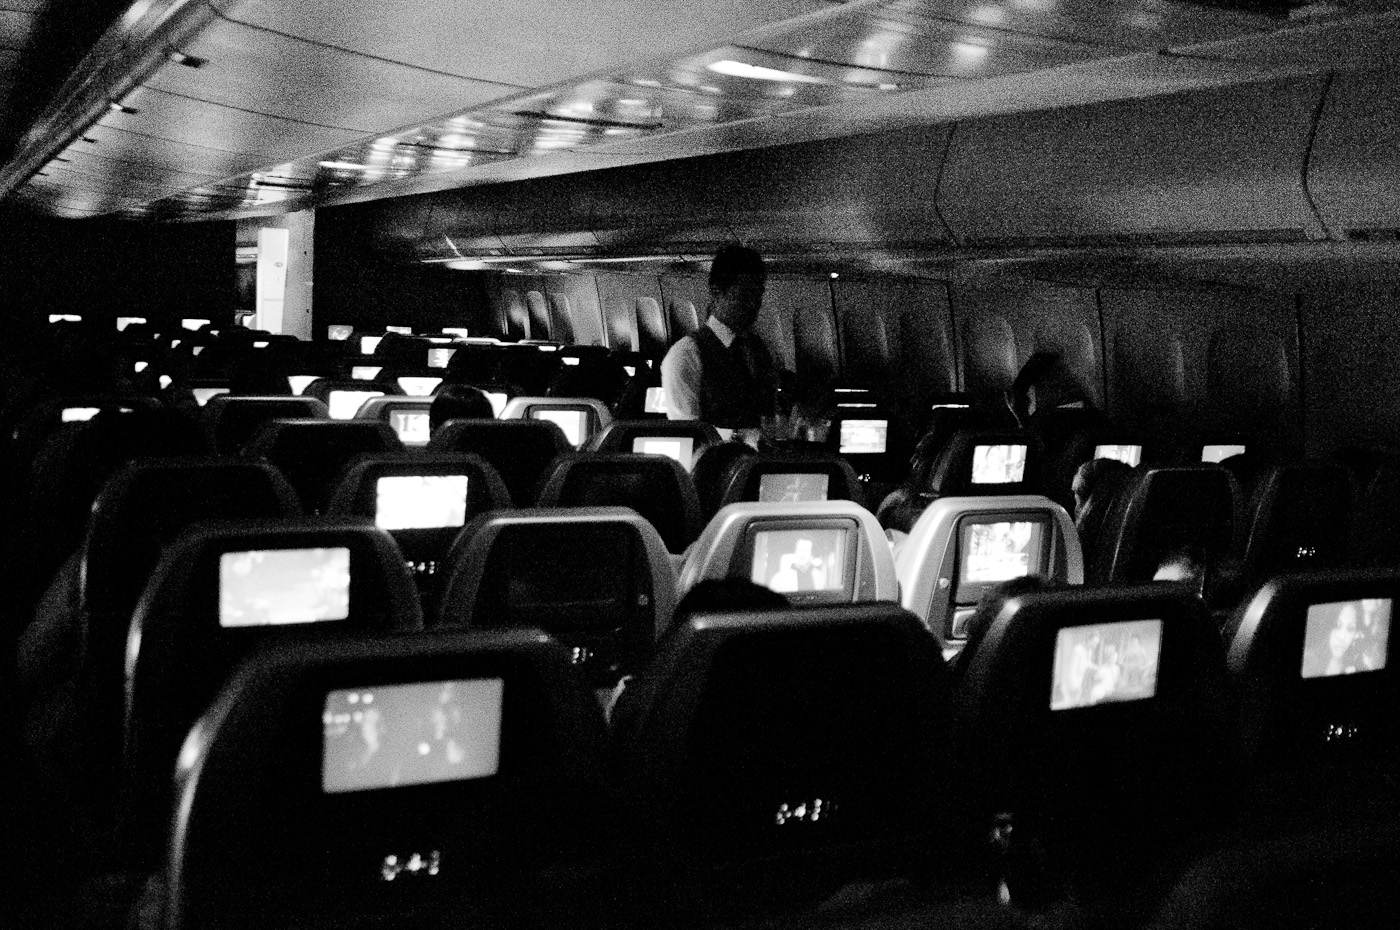 A very gritty but beautiful picture inside a commercial flight at 25600ISO. Sony NEX-5n